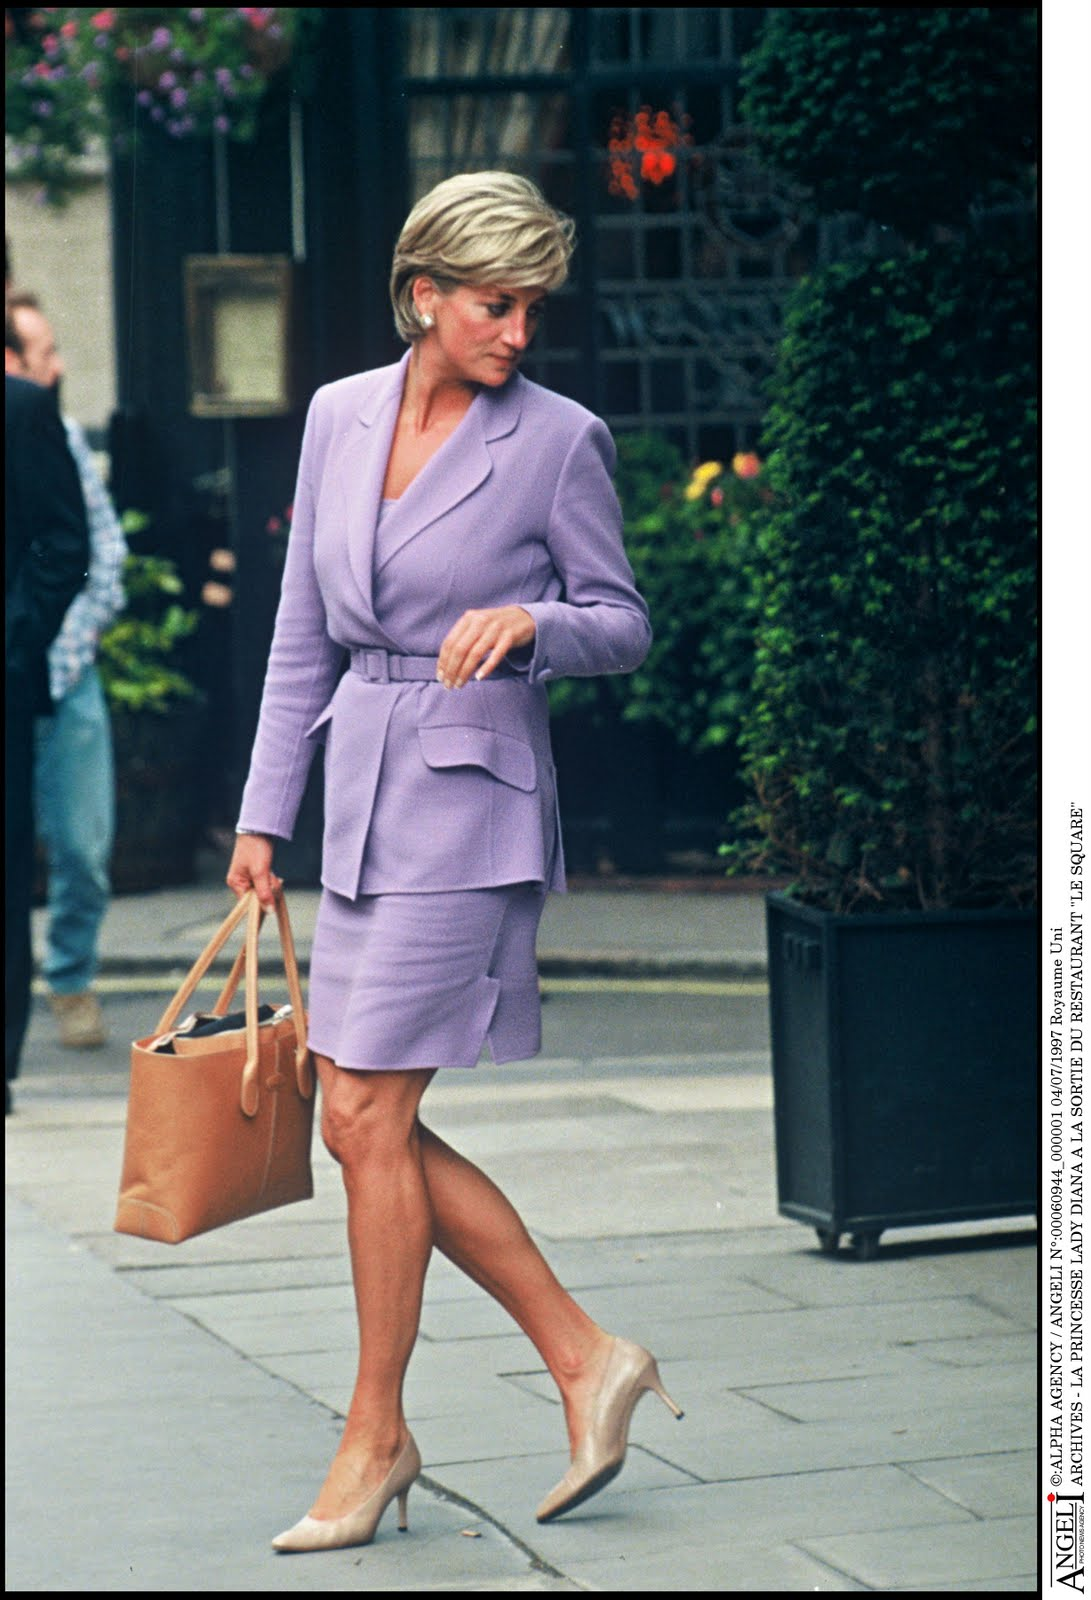 http://4.bp.blogspot.com/-IflahNjXb3M/UFHG6gu2Y5I/AAAAAAAAA24/bzGrQyZer04/s1600/Lady-Diana-with-the-D-Bag-2.jpg